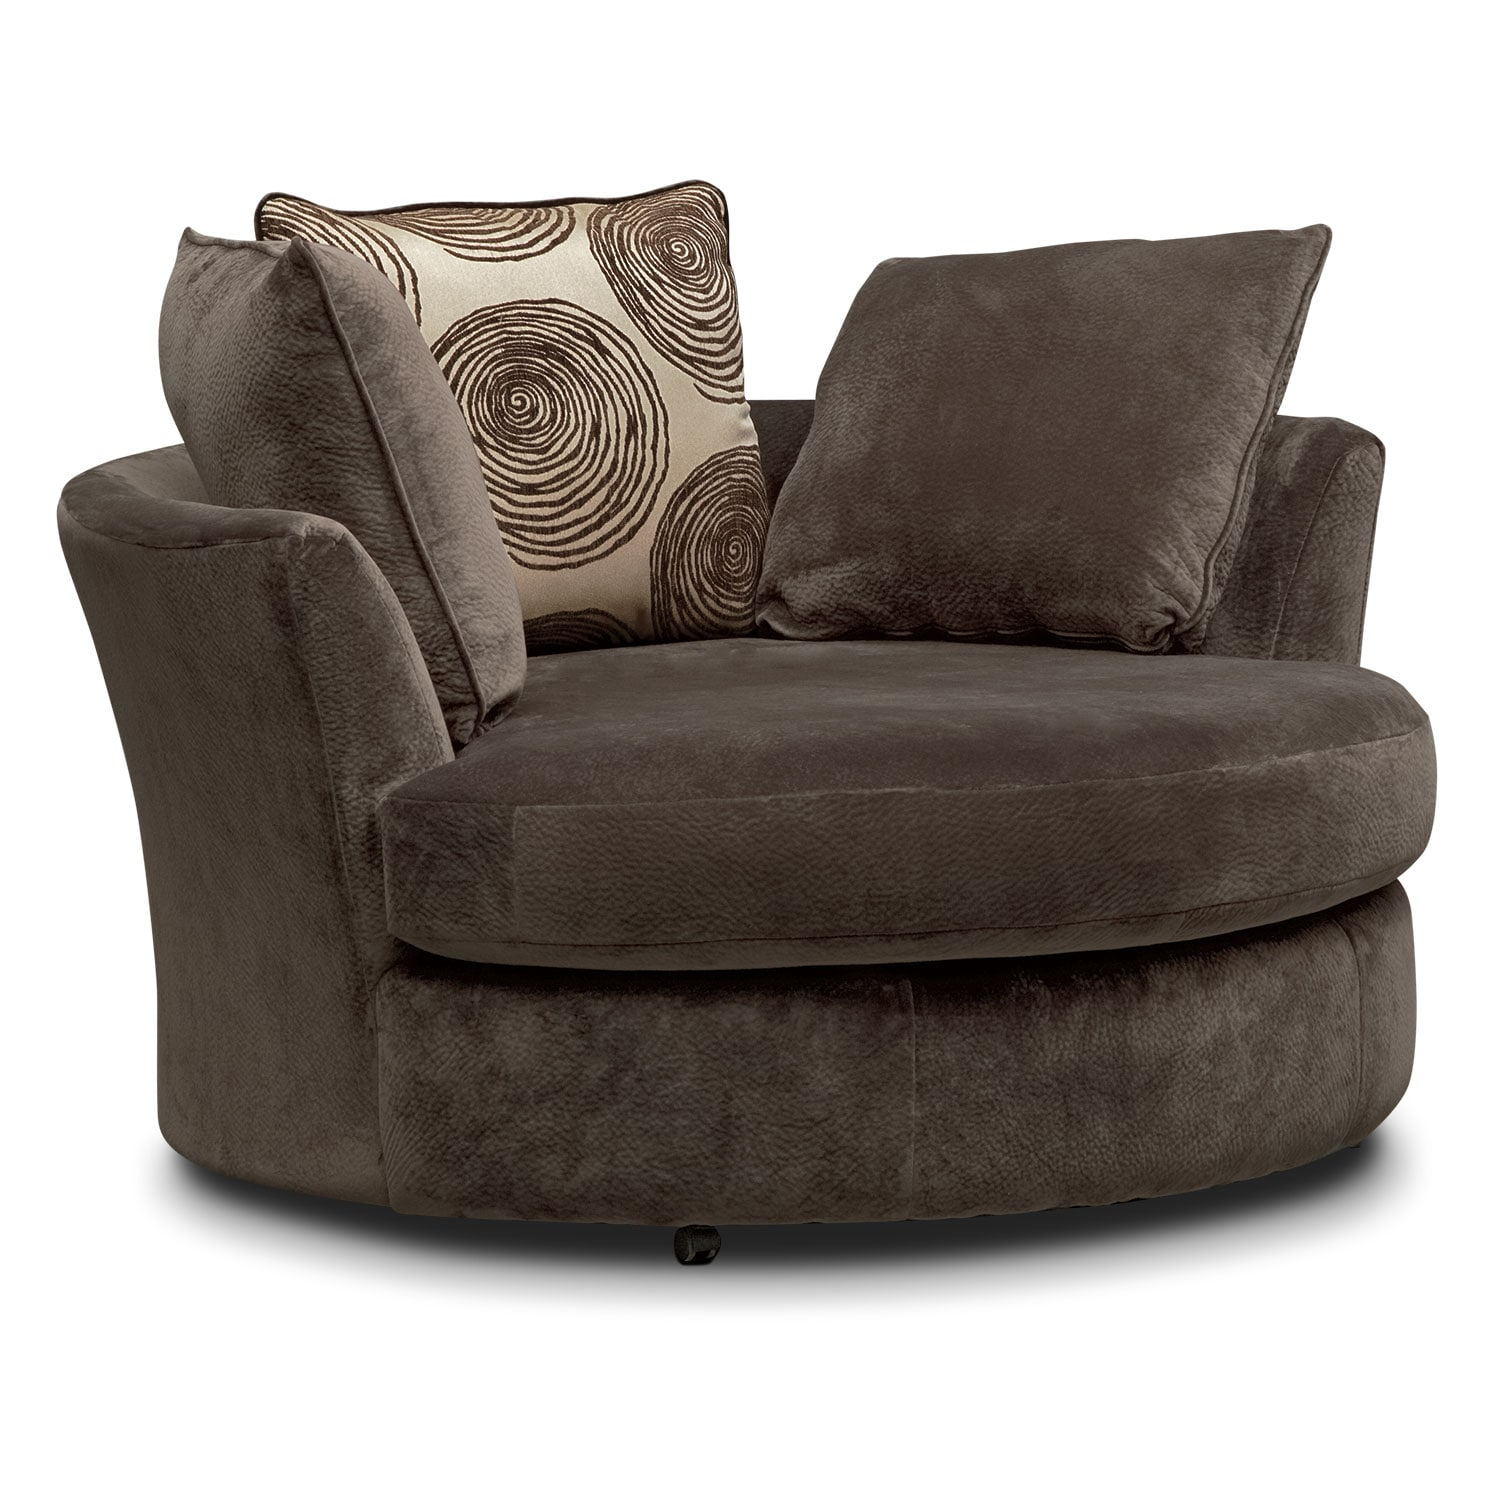 round swivel chairs for living room. Living Room Furniture  Cordelle Swivel Chair Chocolate Hover to zoom Value City and